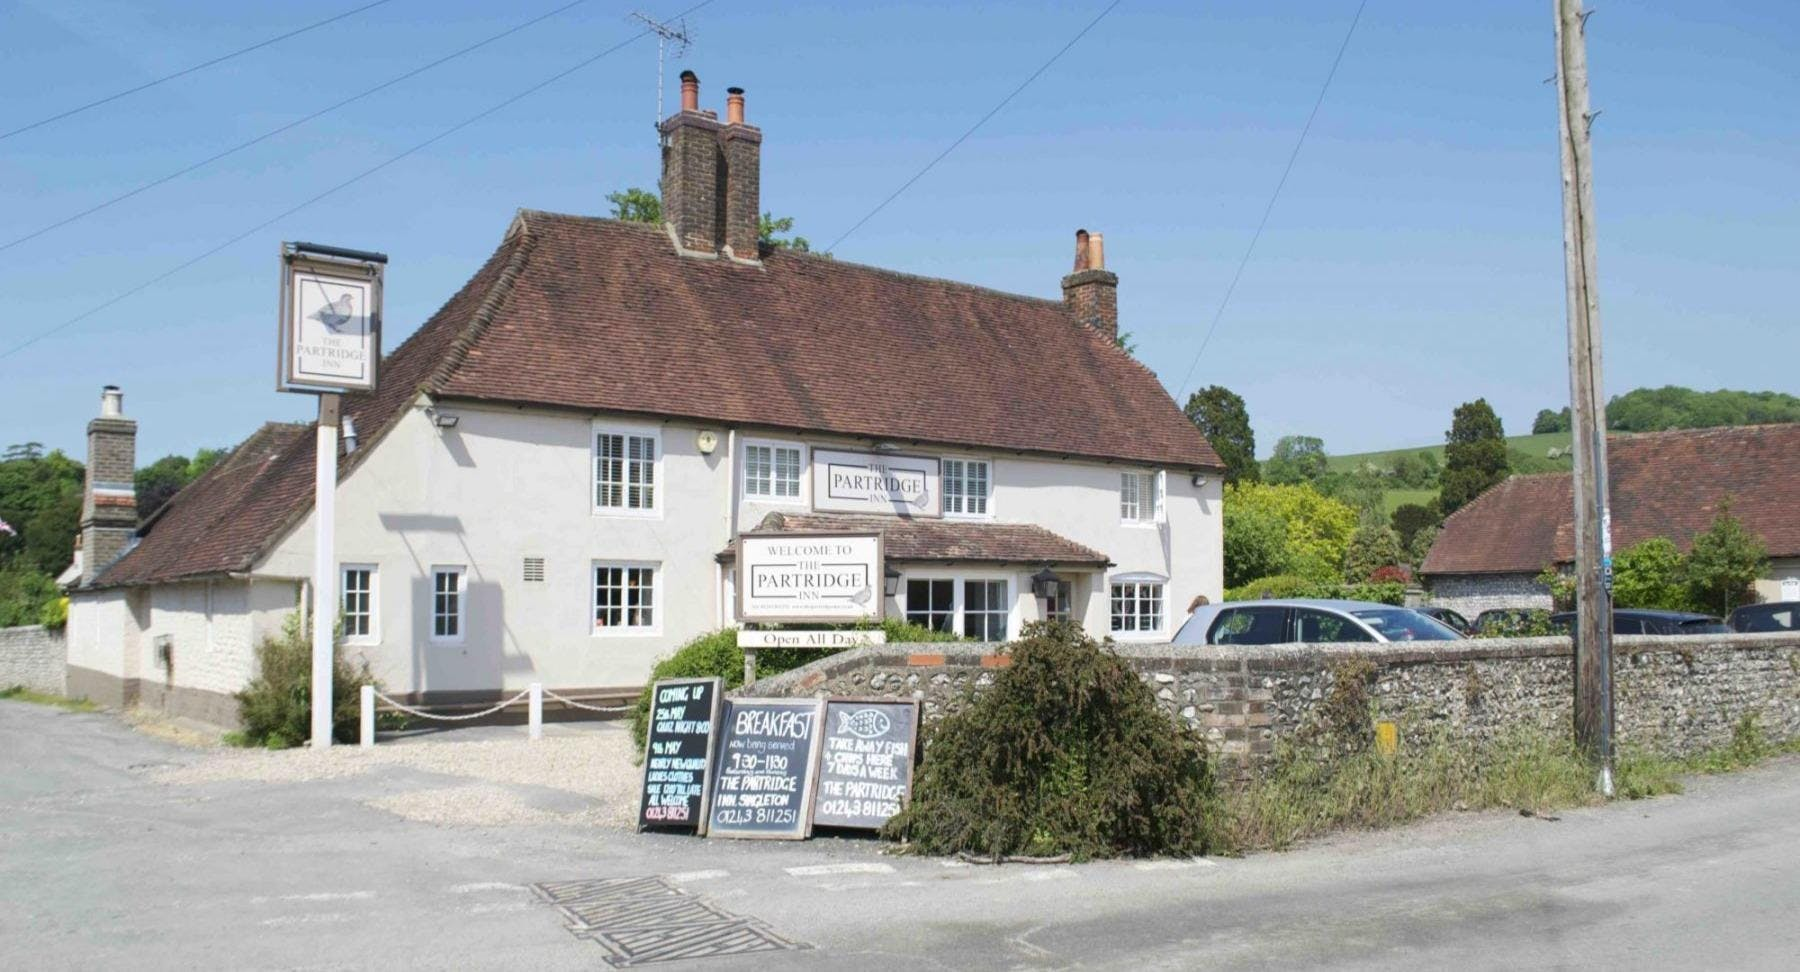 The Partridge Inn Chichester image 1